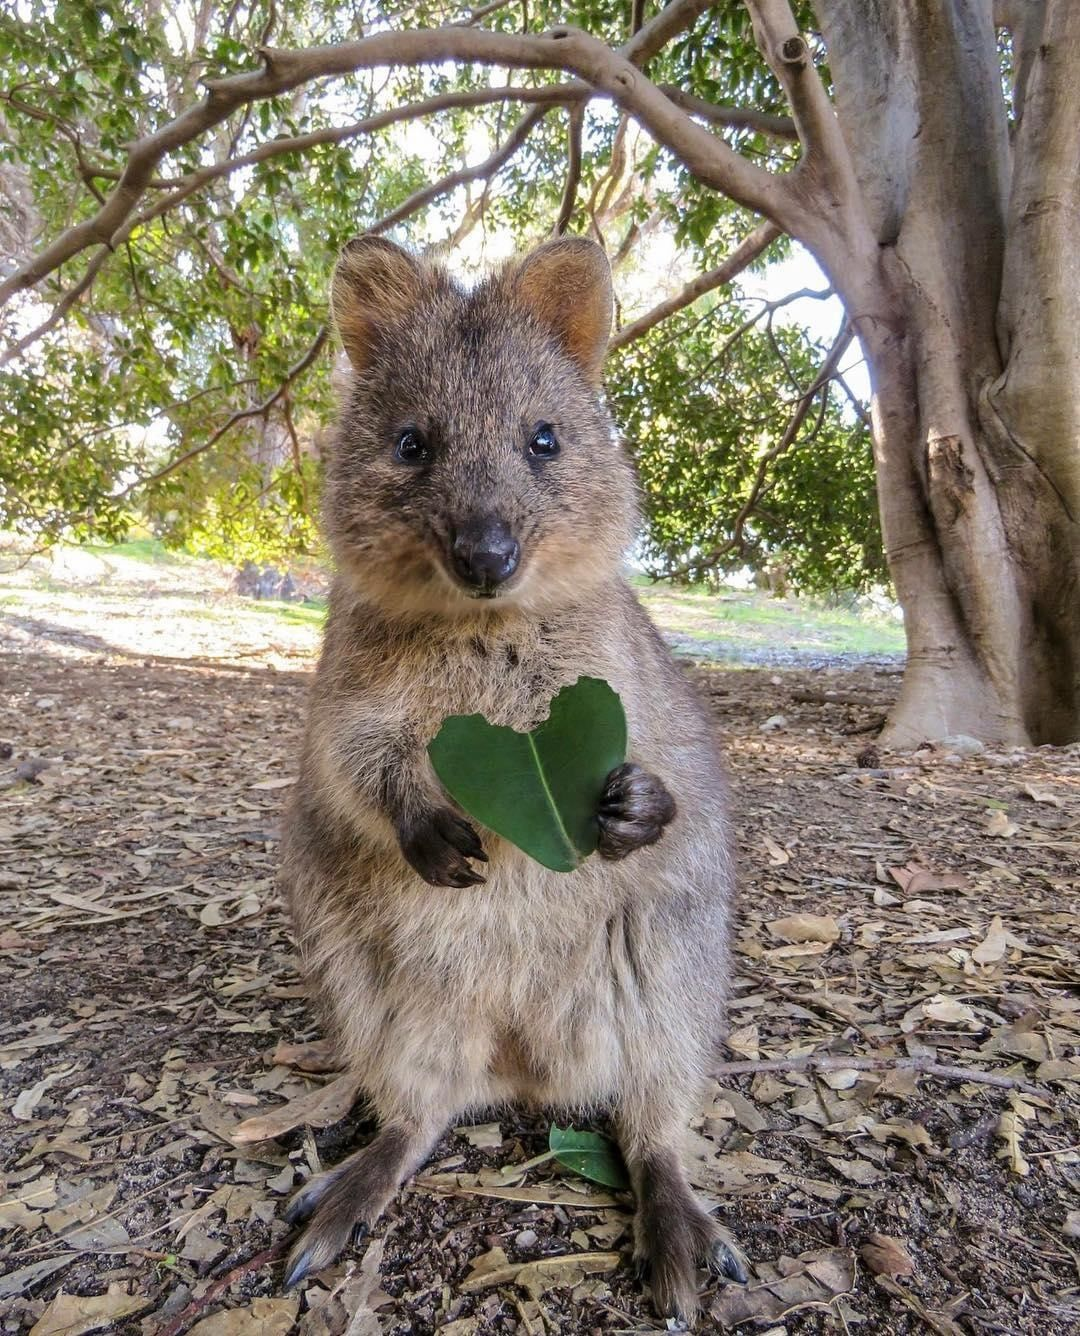 Australia On Instagram Will You Accept This Leaf We Hope Cruzysuzy Said Yes The Quokkas On Animales Adorables Animales Bonitos Animales Y Mascotas